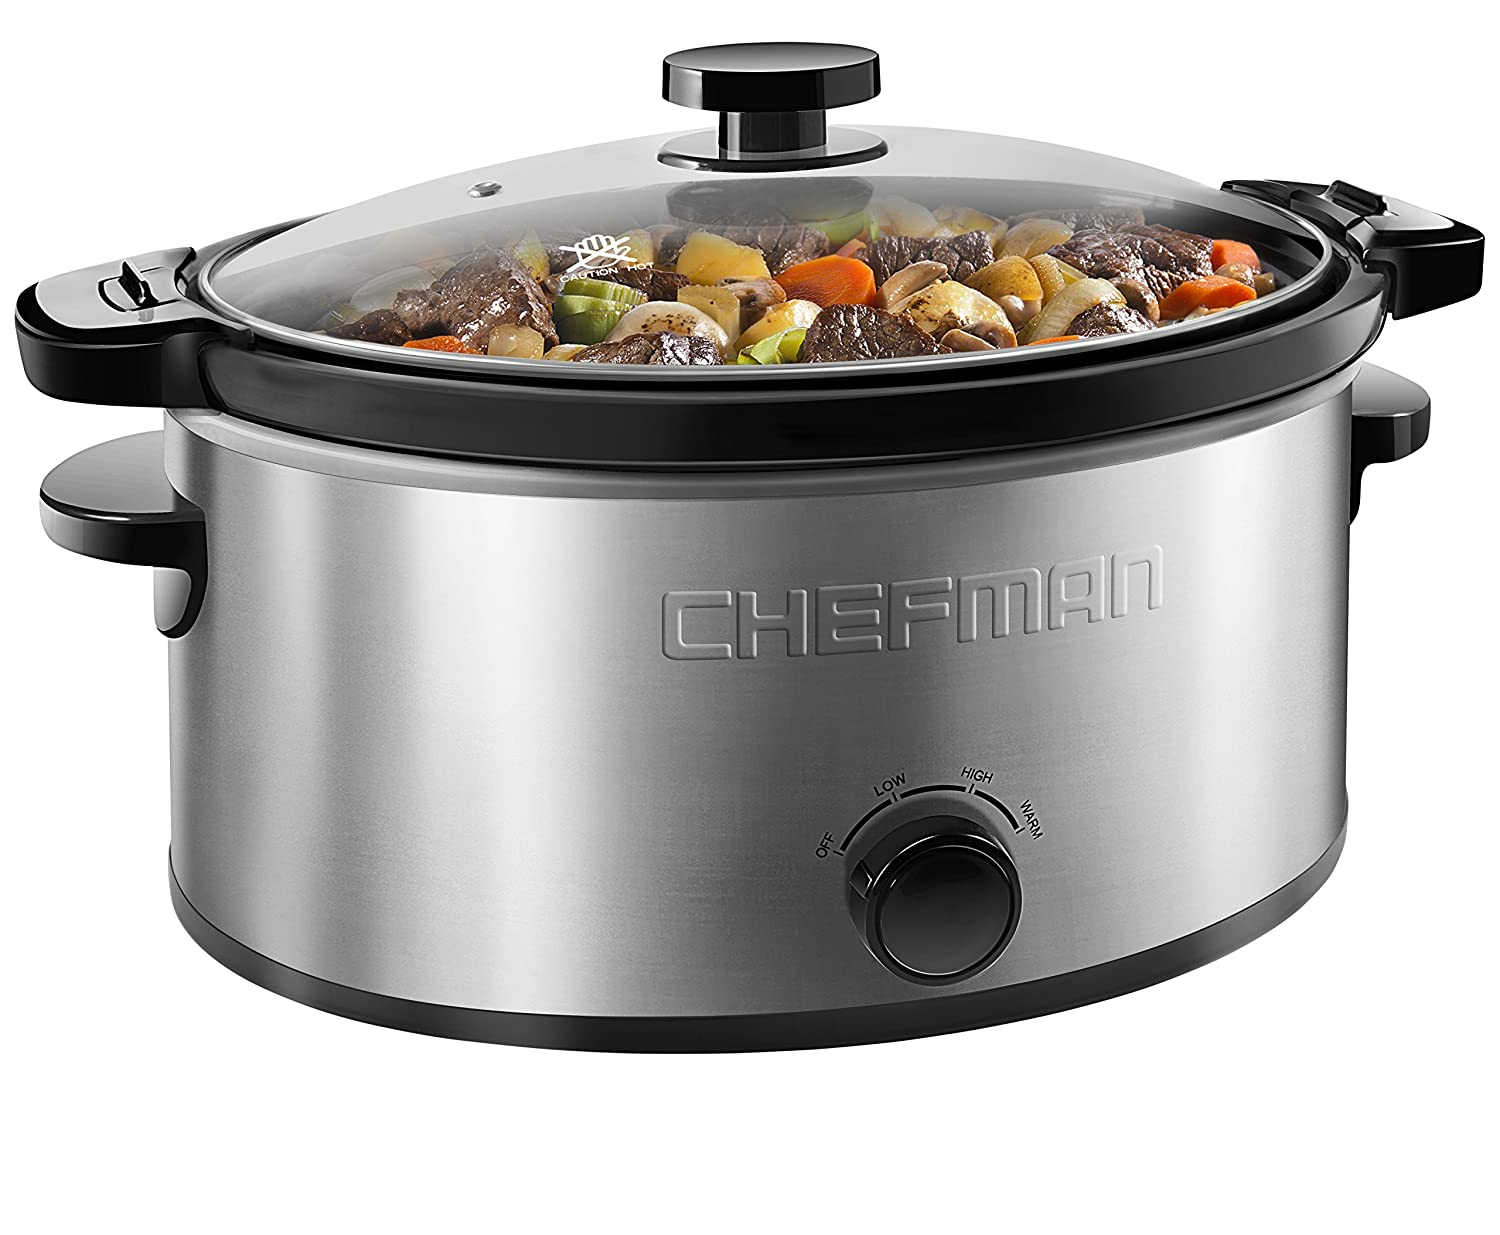 Chefman Slow Cookers - 3Qt & 6Qt (Locking Lid)